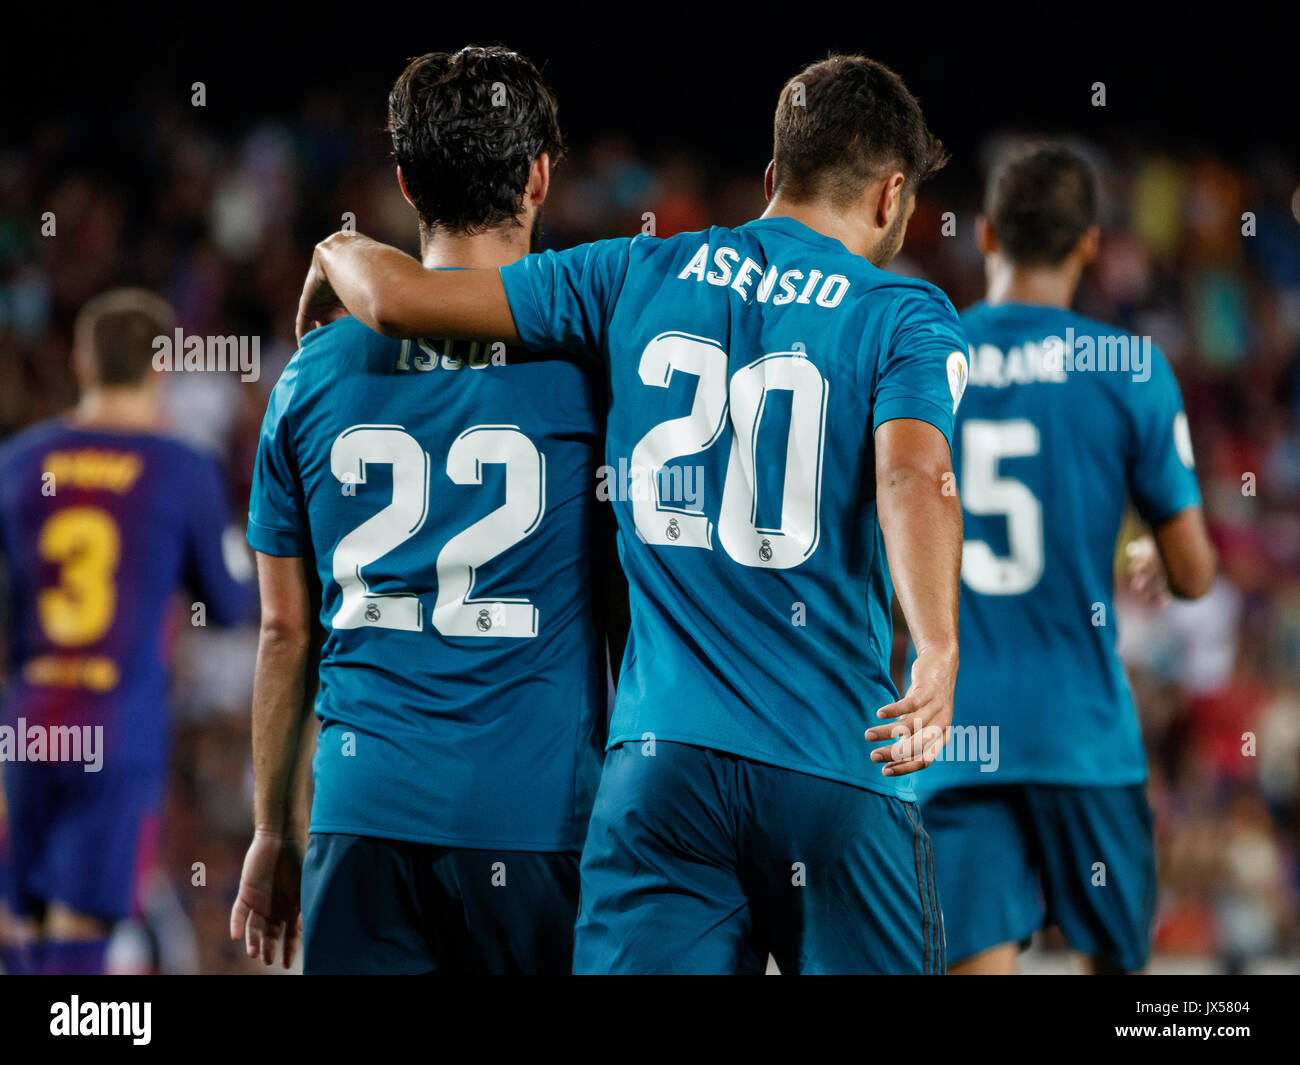 Camp Nou Stadium, Barcelona, Spain. 13th of August, 2017. Super Cup of Spain between FC Barcelona and Real Madrid. Asensio with Isco Credit: David Ramírez/Alamy Live News - Stock Image